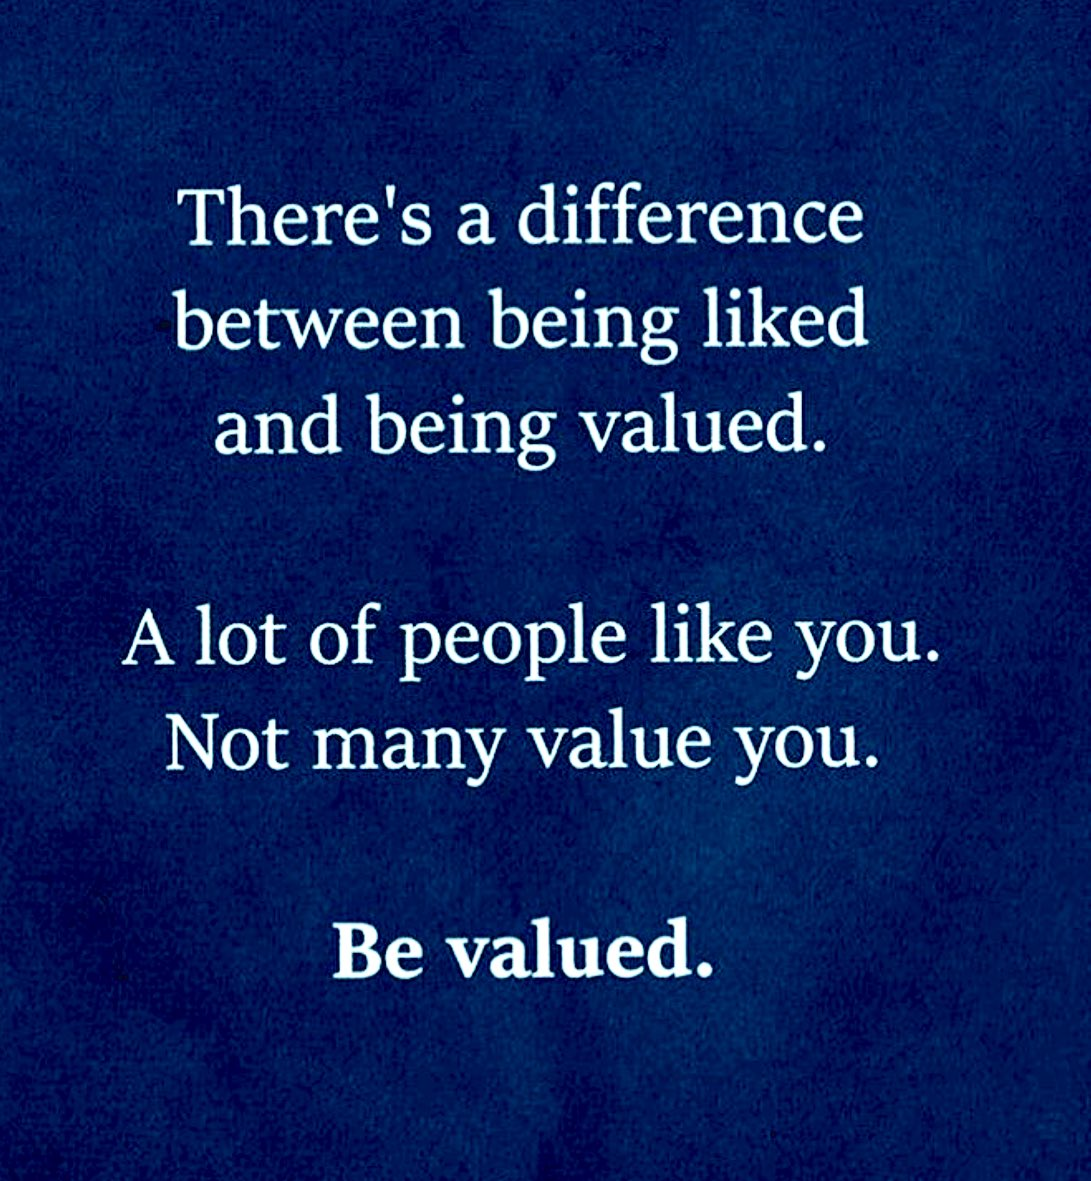 There's a difference between being liked and being valued. A lot of people like you. Not many value you. BE VALUED. #bevalued #manners #smiling #assets #4THEWIN1 #ProudMoment #WINNER #amwriting #smartdoll #randomactsofkindness #books #education #UnitedNations #teamoftheyear #Z 🙌🏻